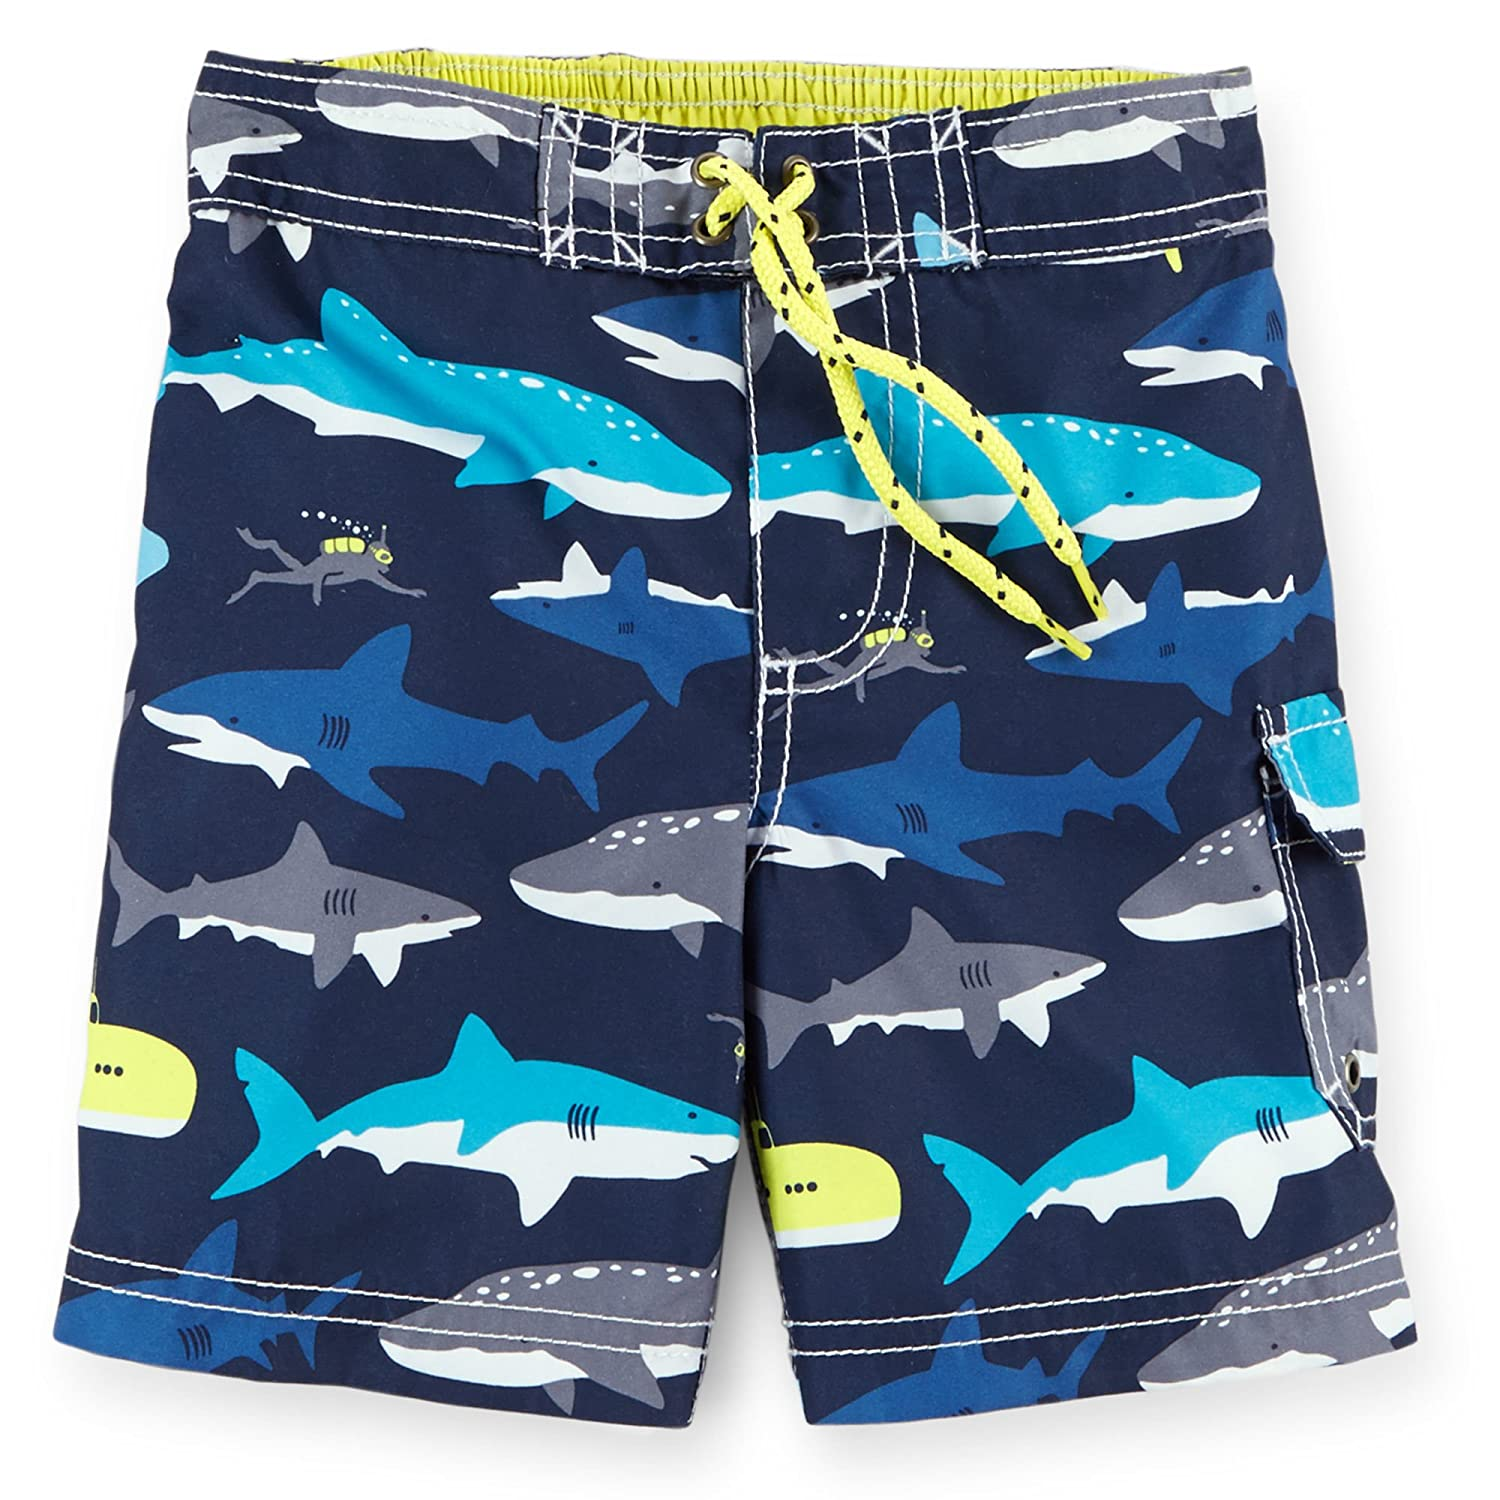 d1d8173b1e Carters Boys 4-8 Neon Shark Swim Trunks Carters Clothing